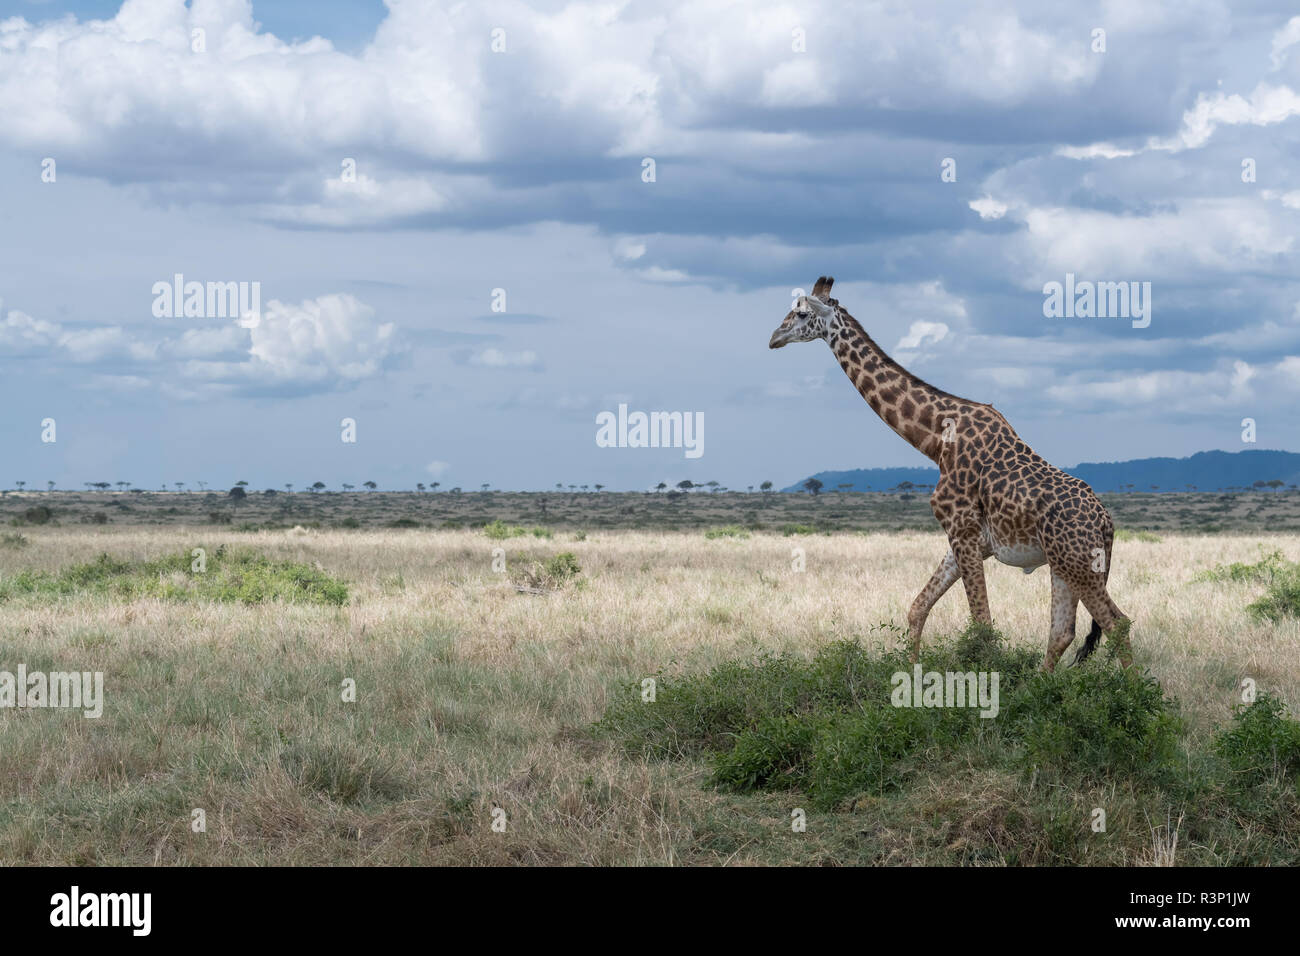 Masai giraffe (Giraffa camelopardalis tippelskirchii) in Maasai Mara region of Kenya in east Africa Stock Photo